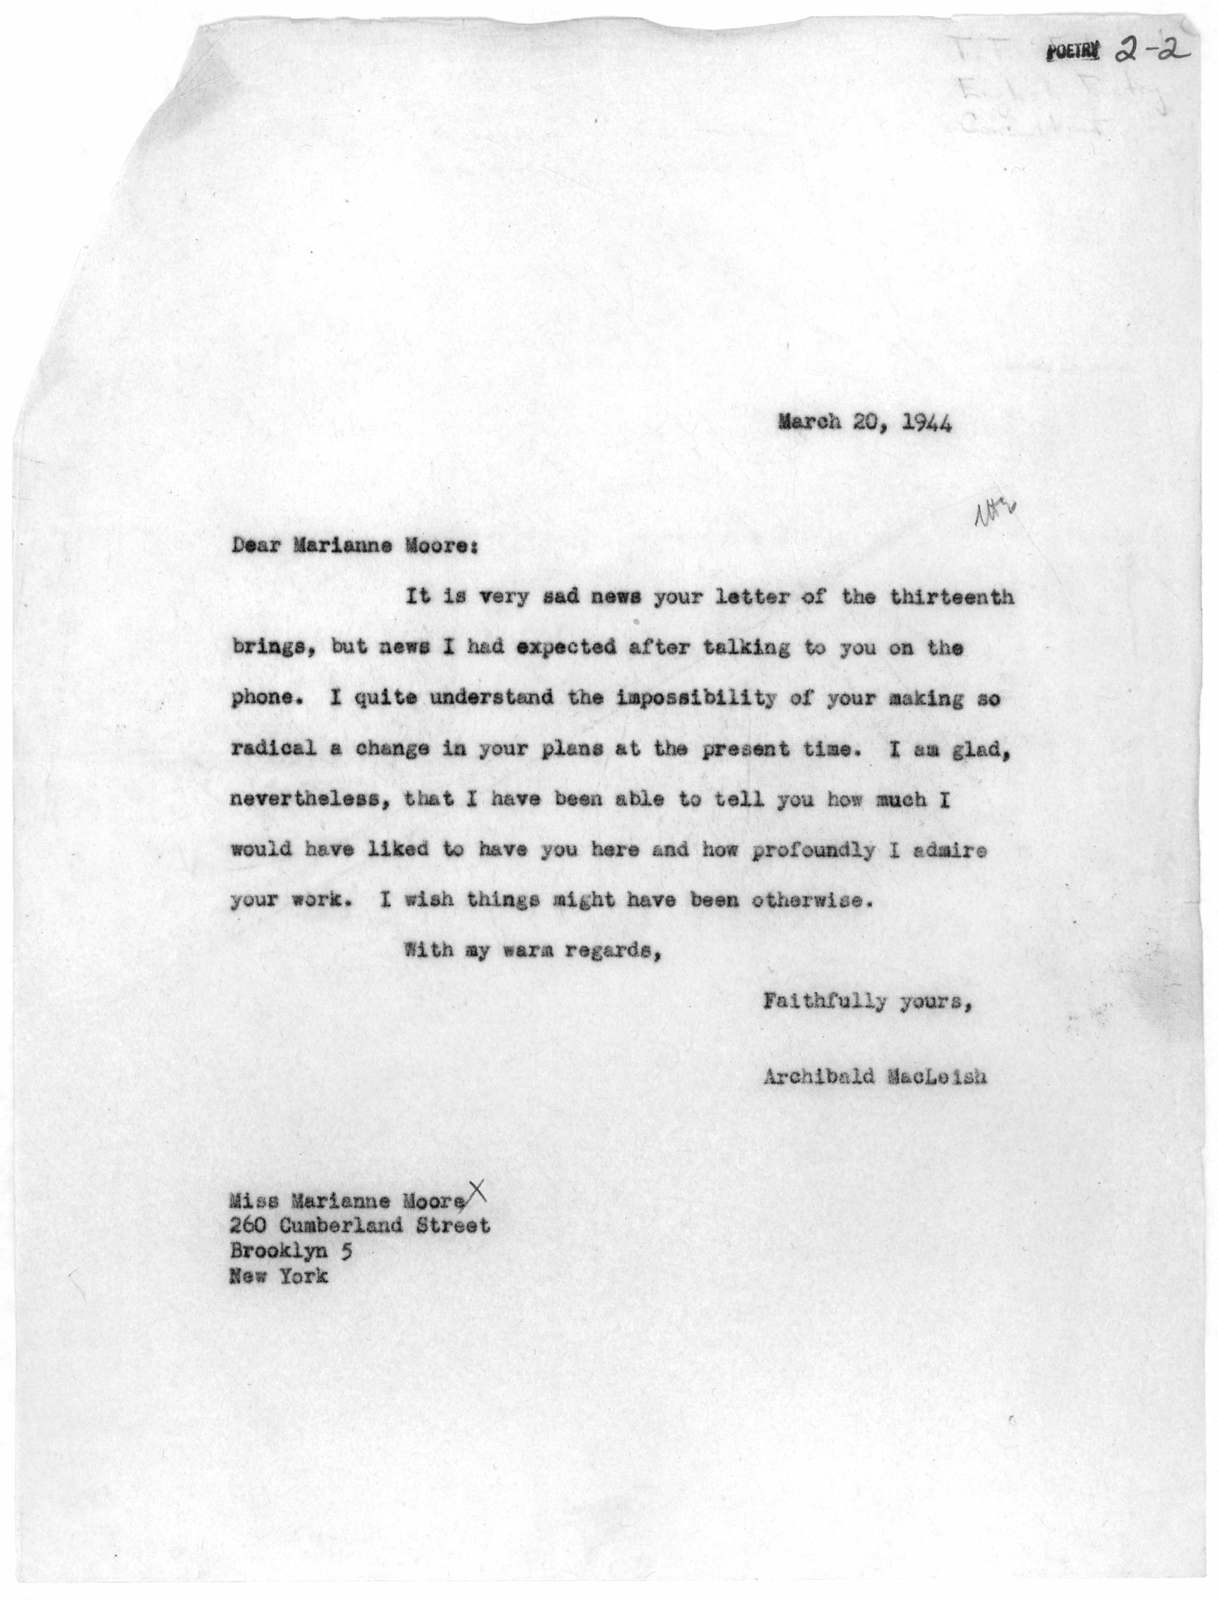 Letter from Archibald MacLeish to Marianne Moore, March 20, 1944